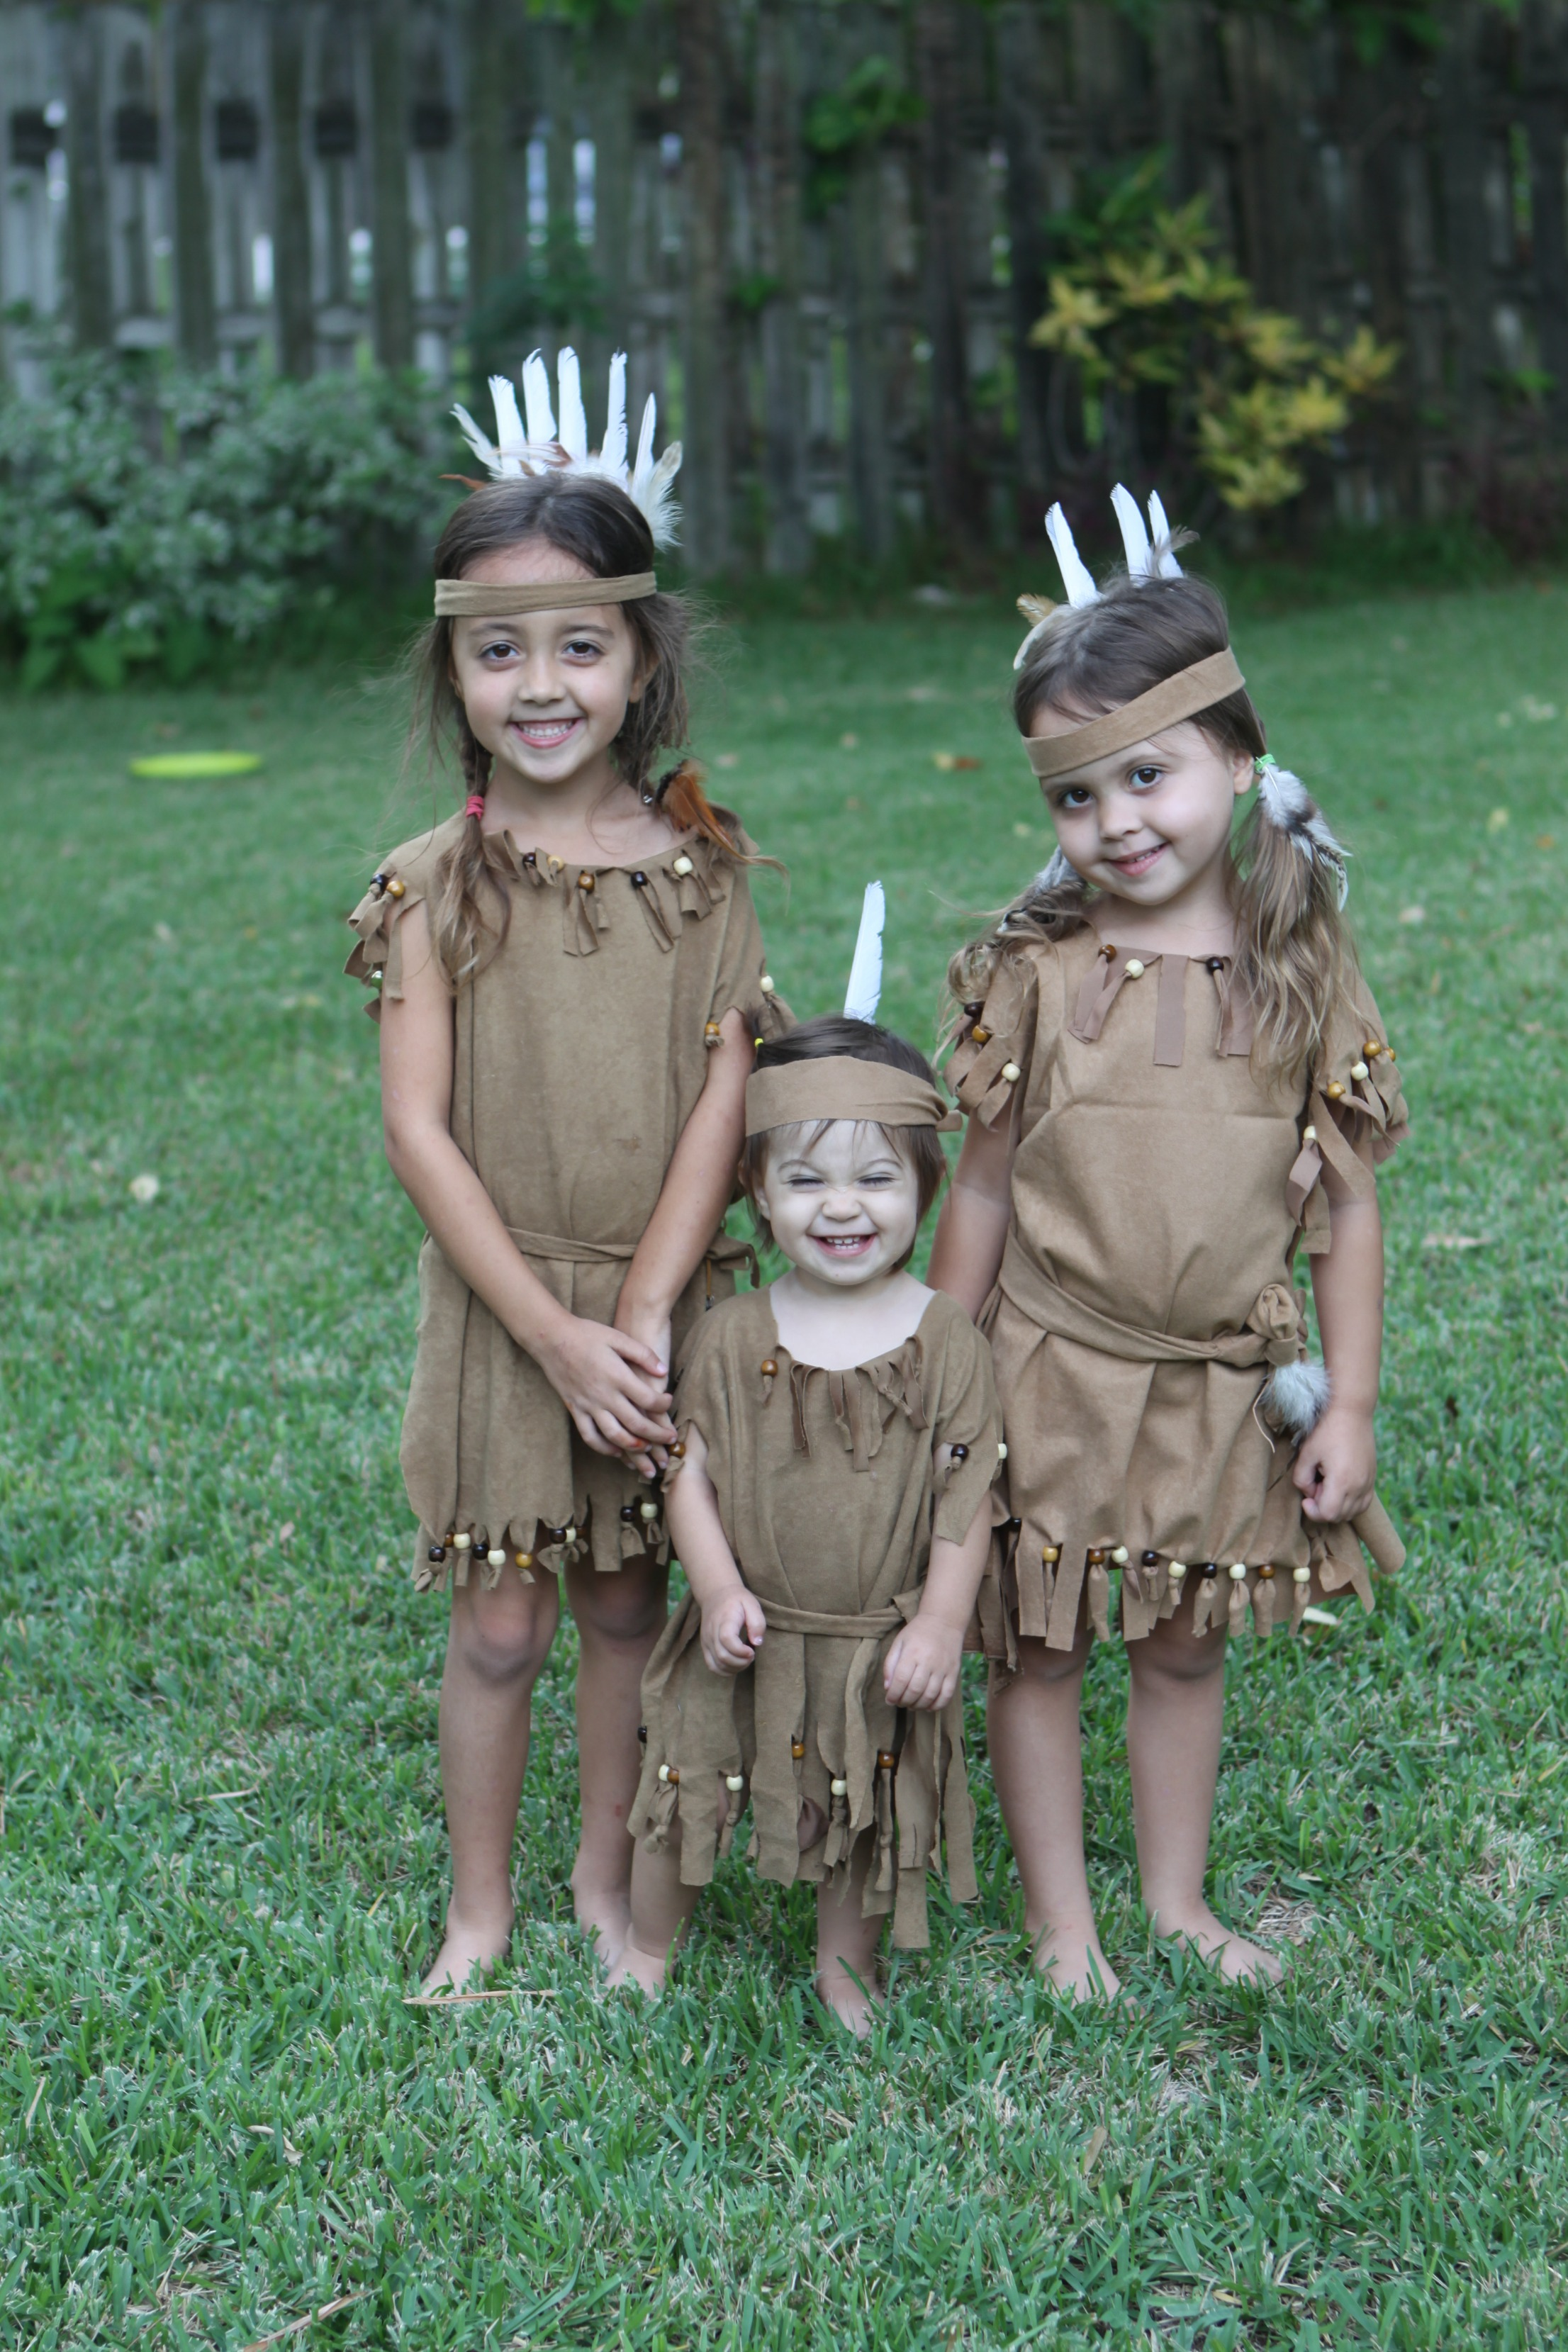 100+ [ Halloween Costume Ideas For Family Of 4 ] | 237 Best Diy ...